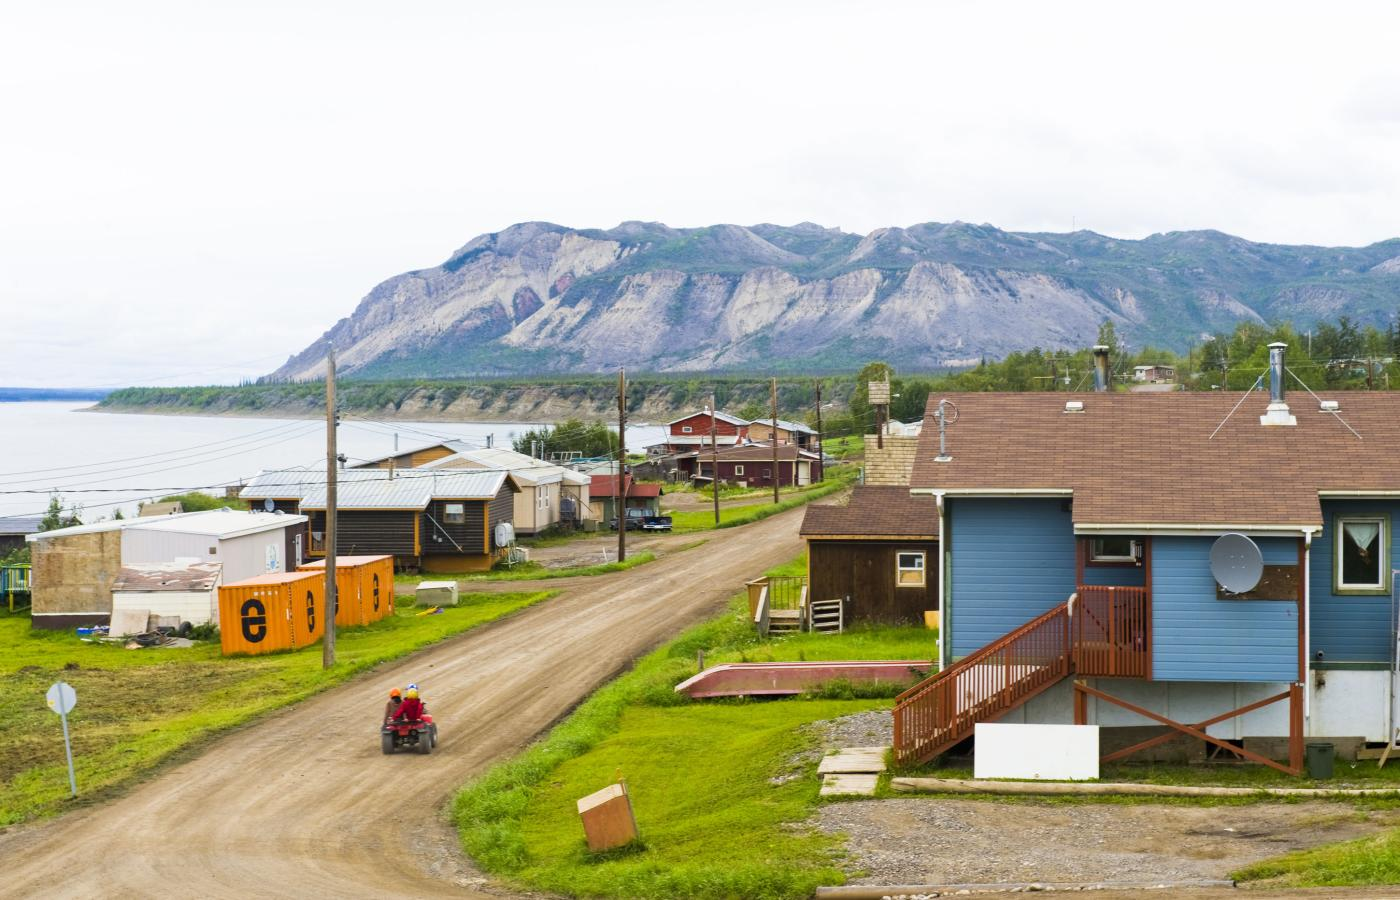 The community of Tulita, along the Mackenzie River in Canada's Northwest Territories